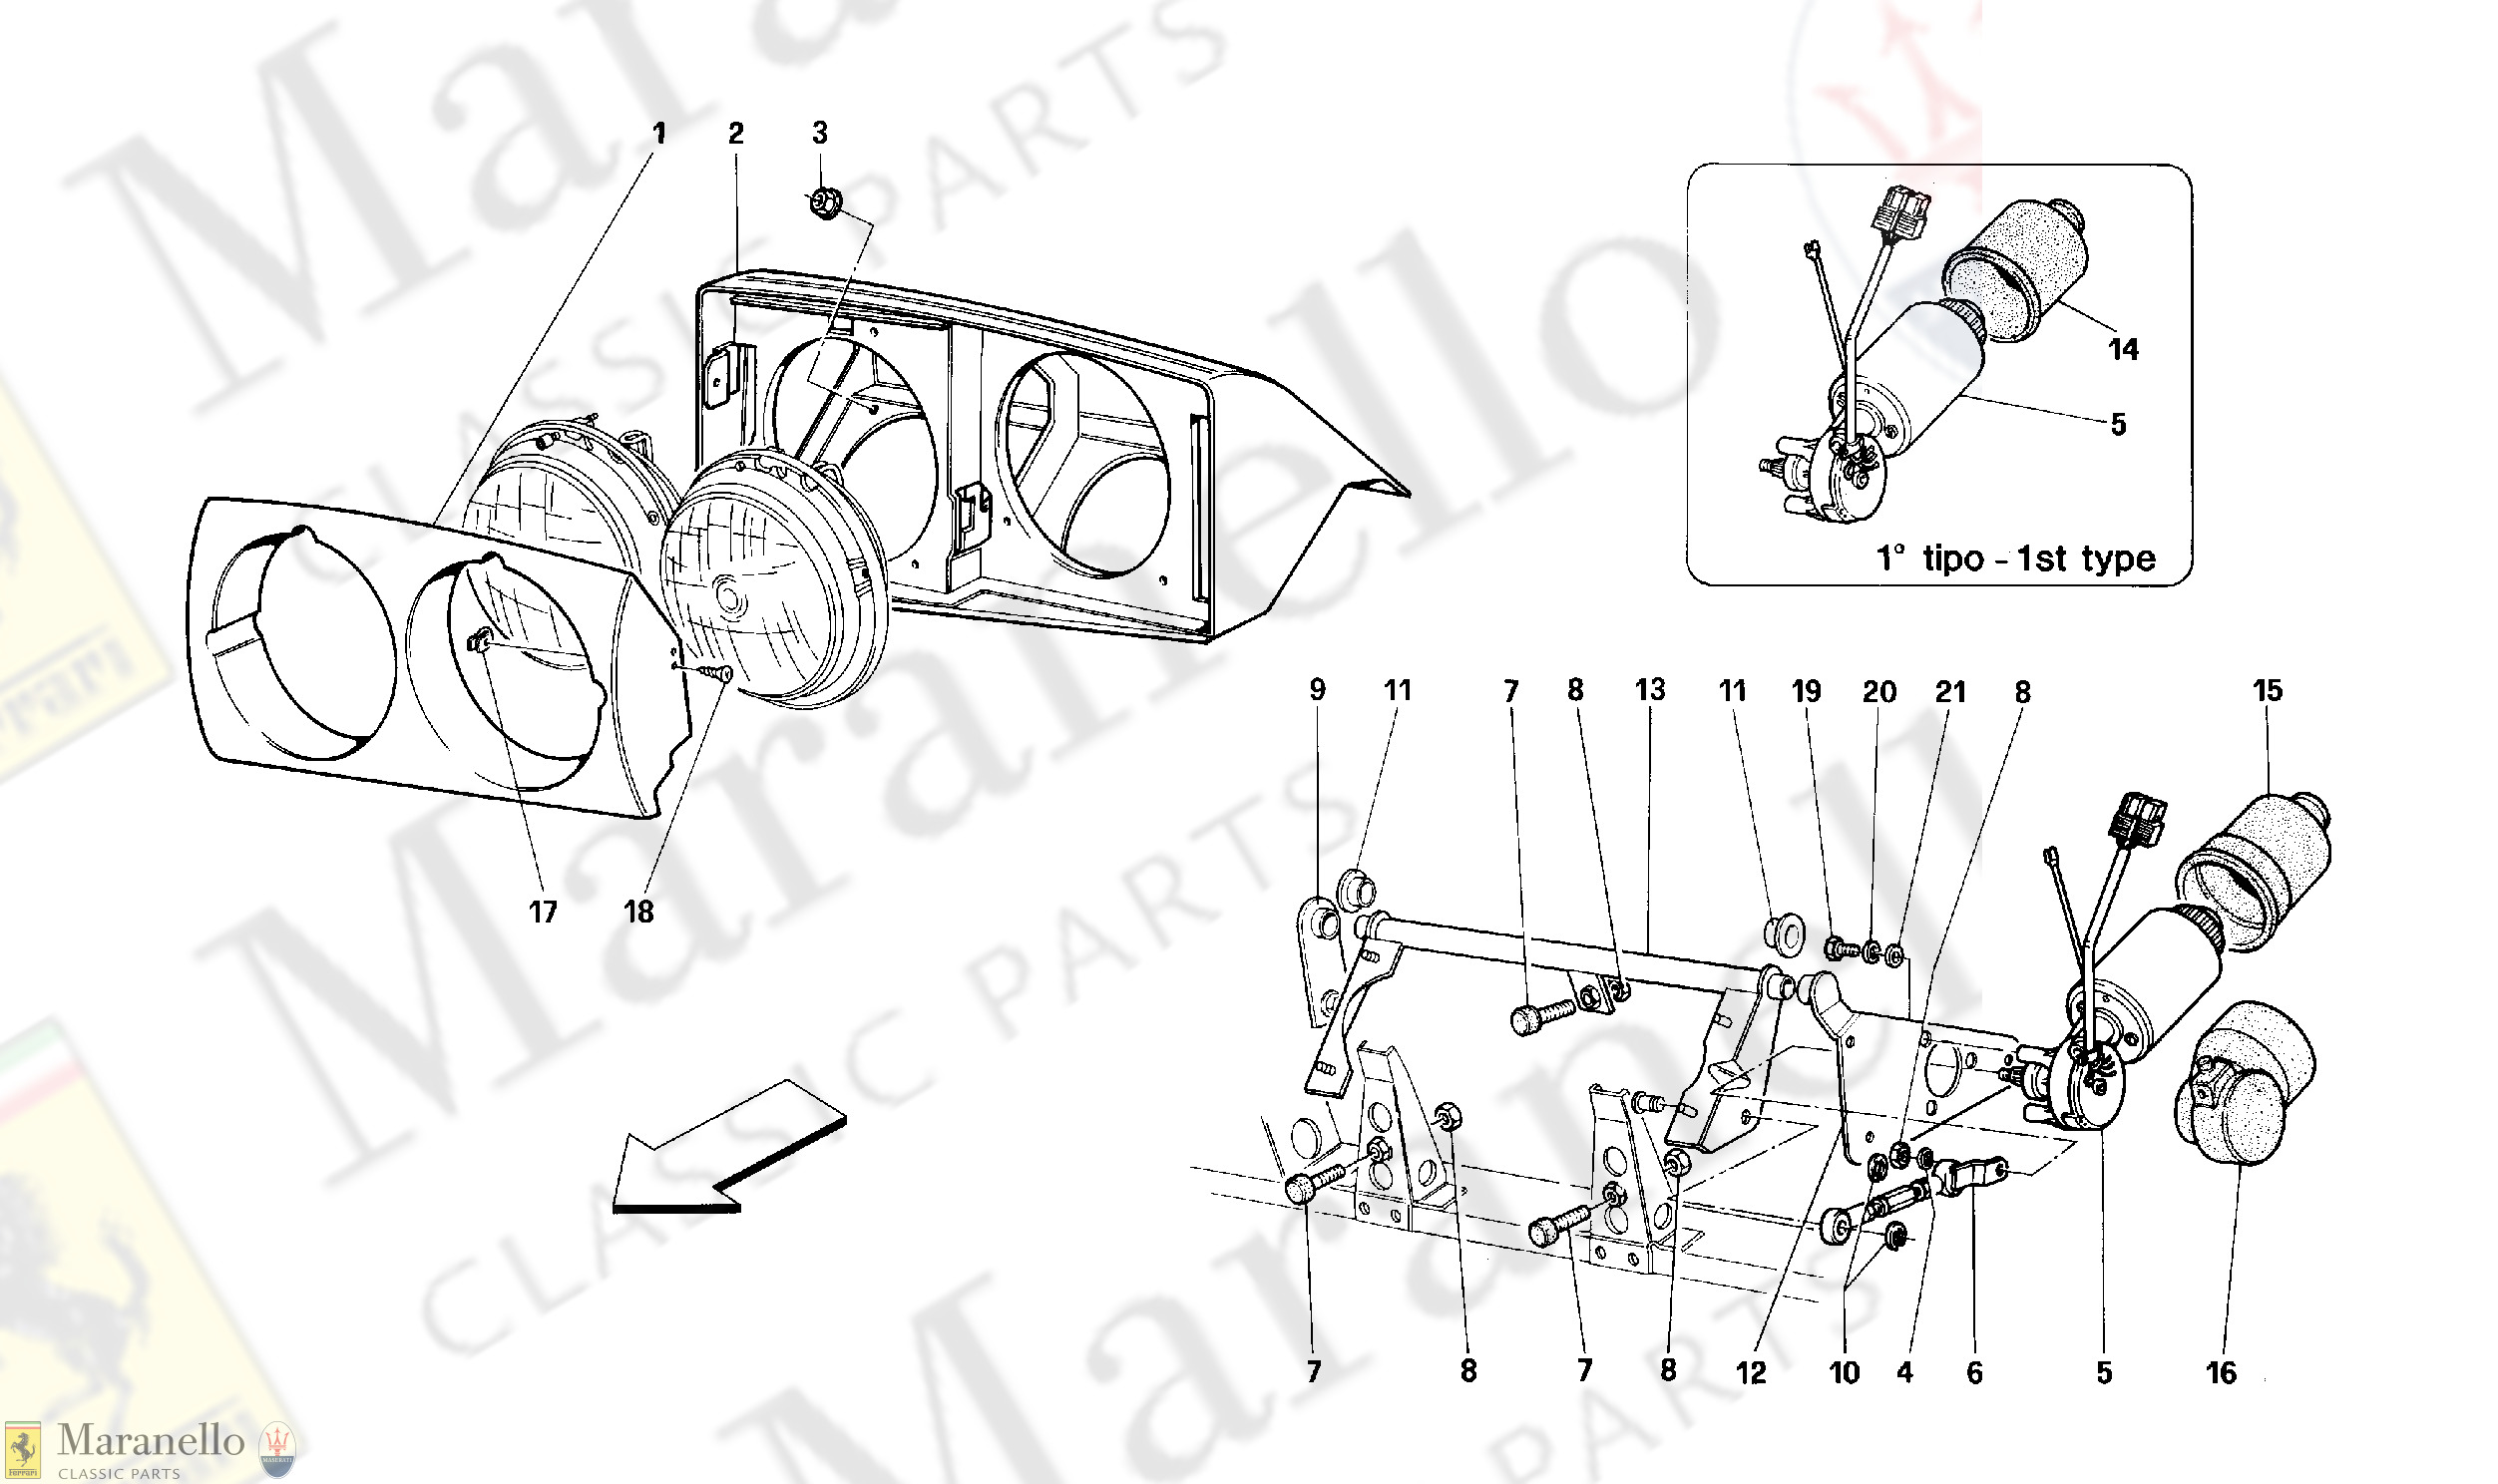 122 - Front Headlight Lifting Device